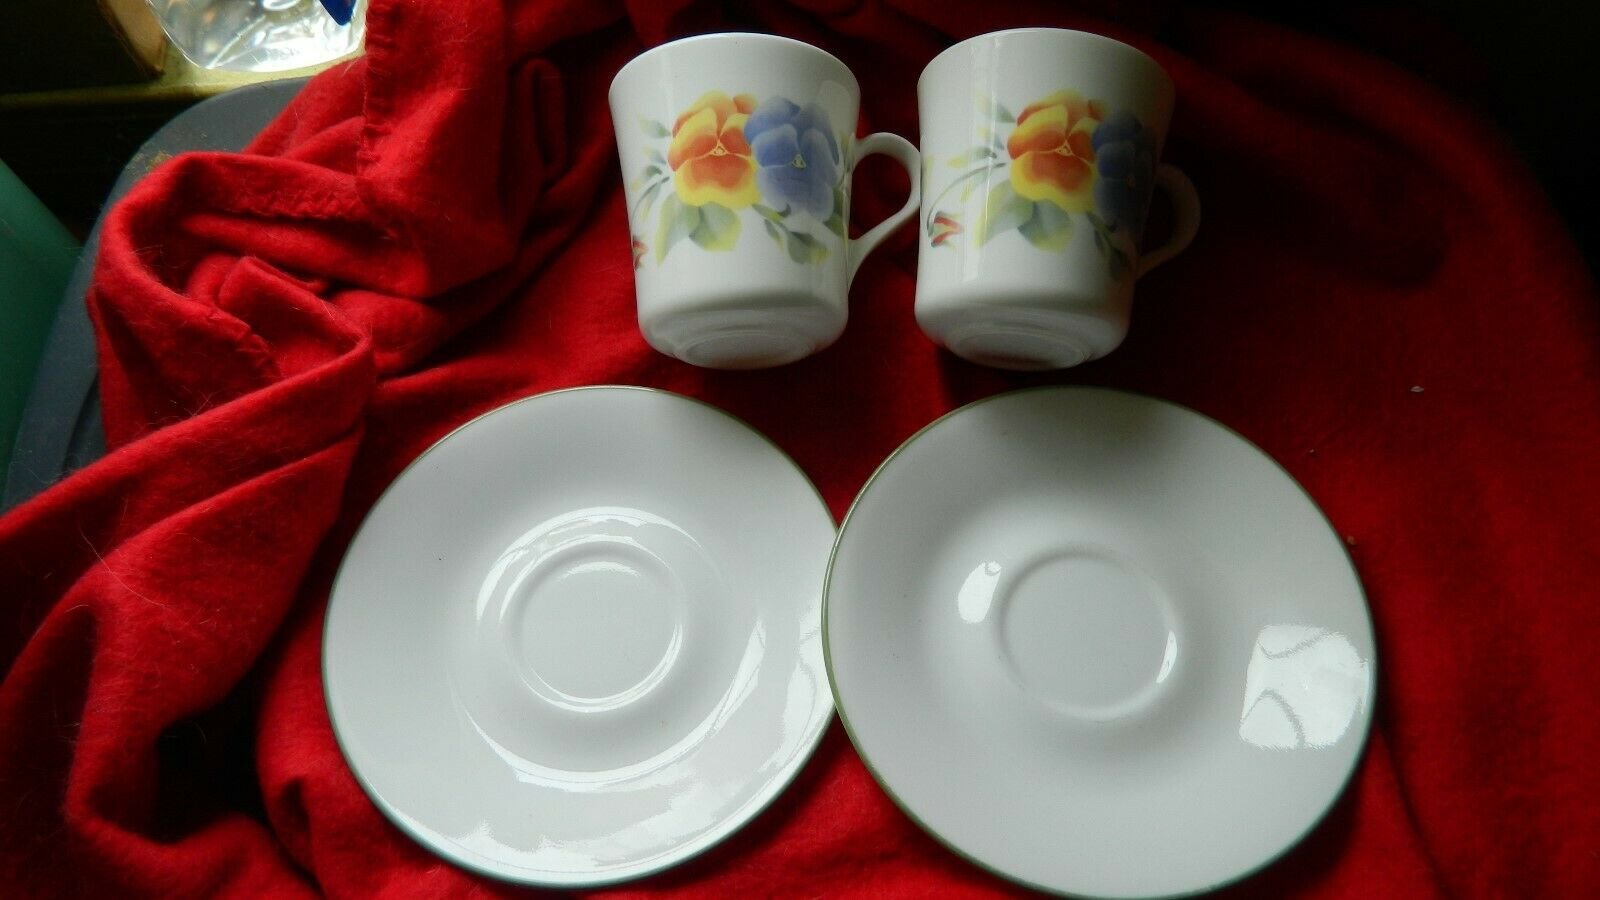 Primary image for CORELLE CORNING SUMMER BLUSH CUPS x 2 + 2 SAUCERS FREE USA SHIP